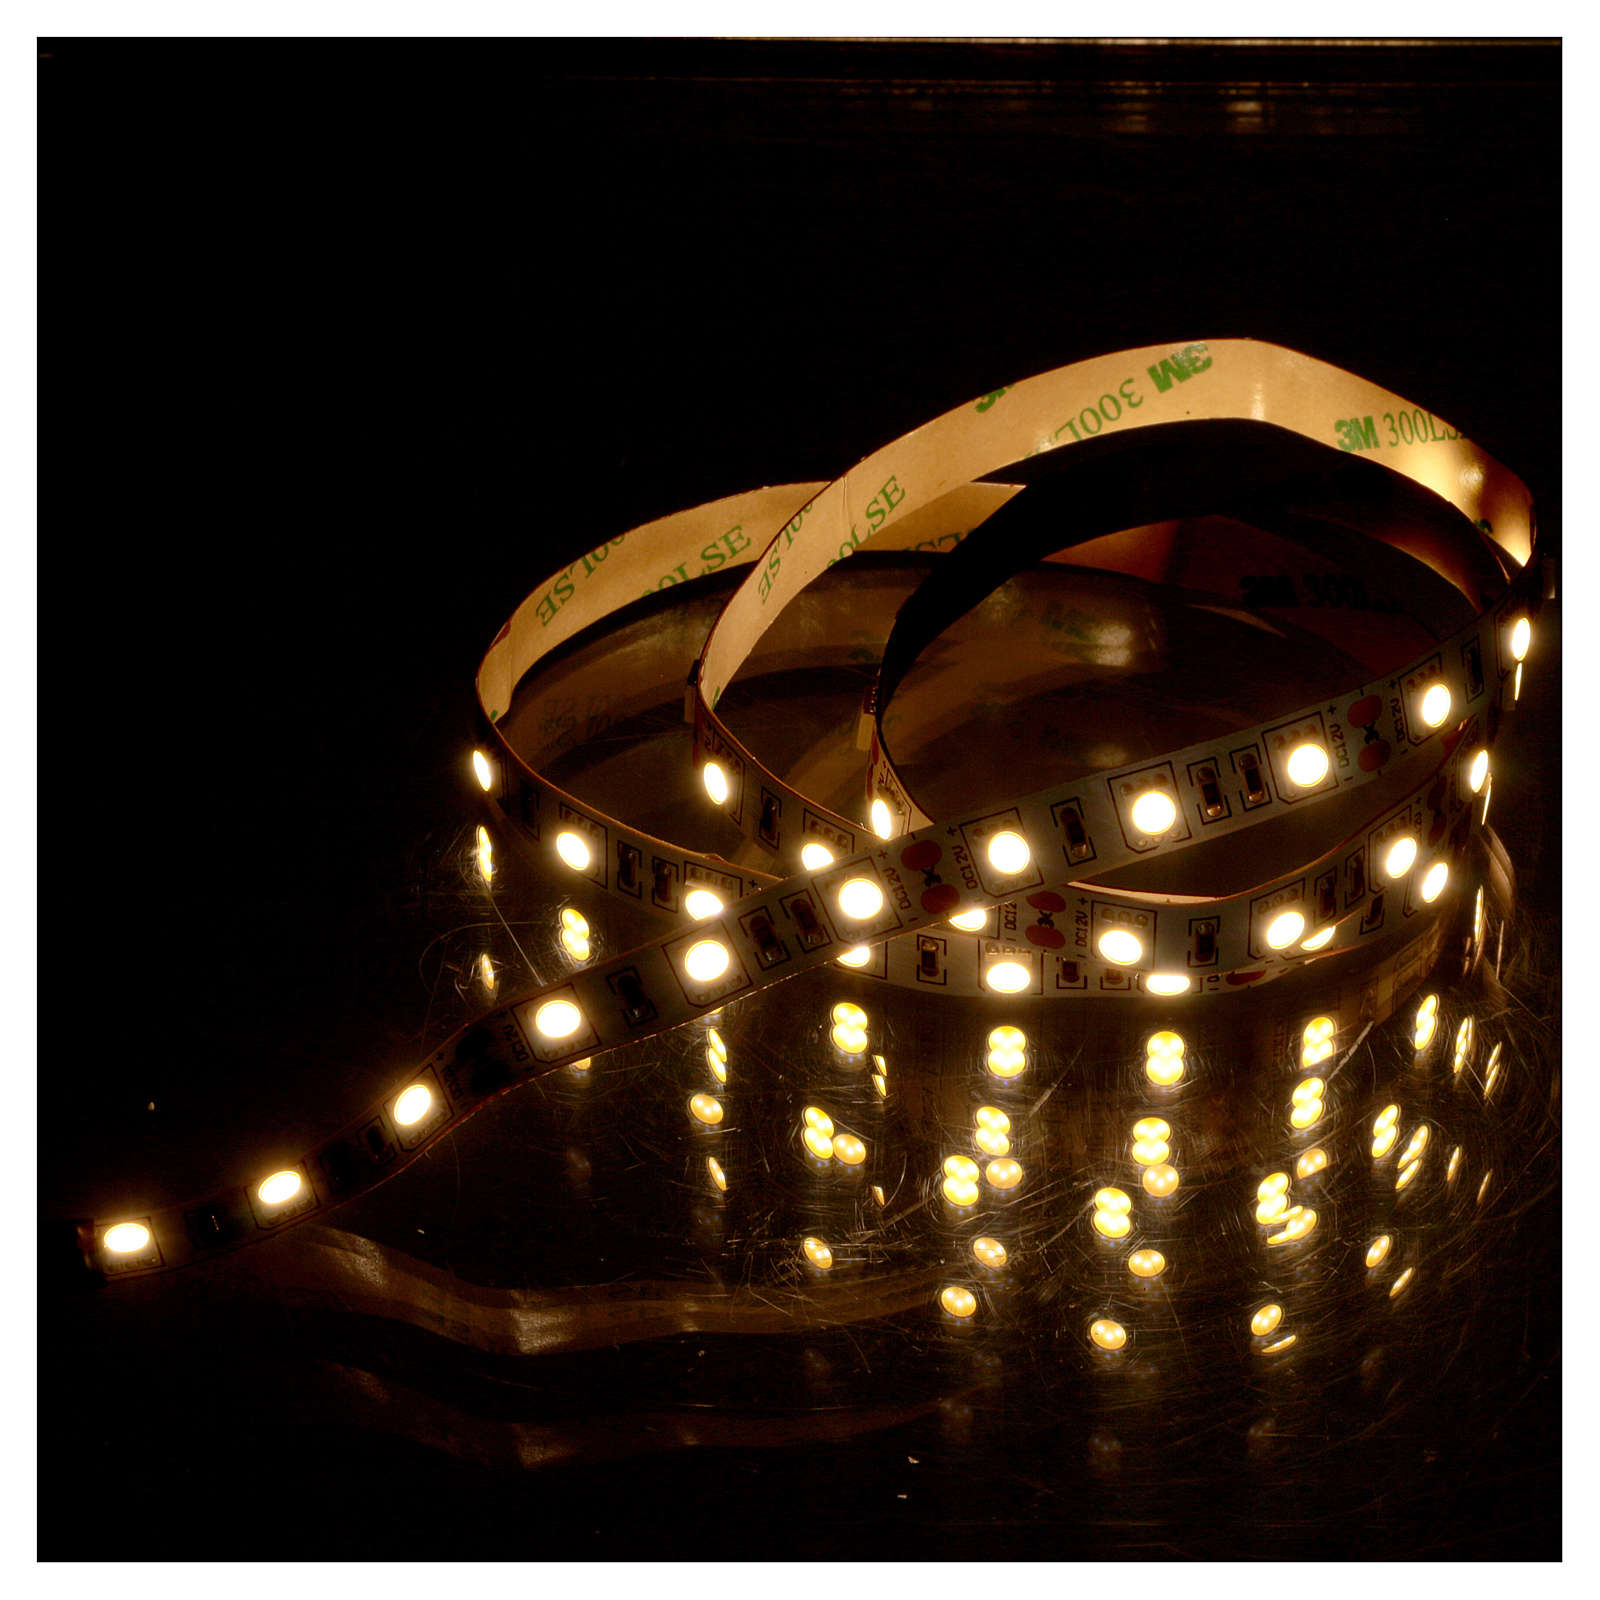 60 LED Striplight warm white 12V 10 cm for nativities 4